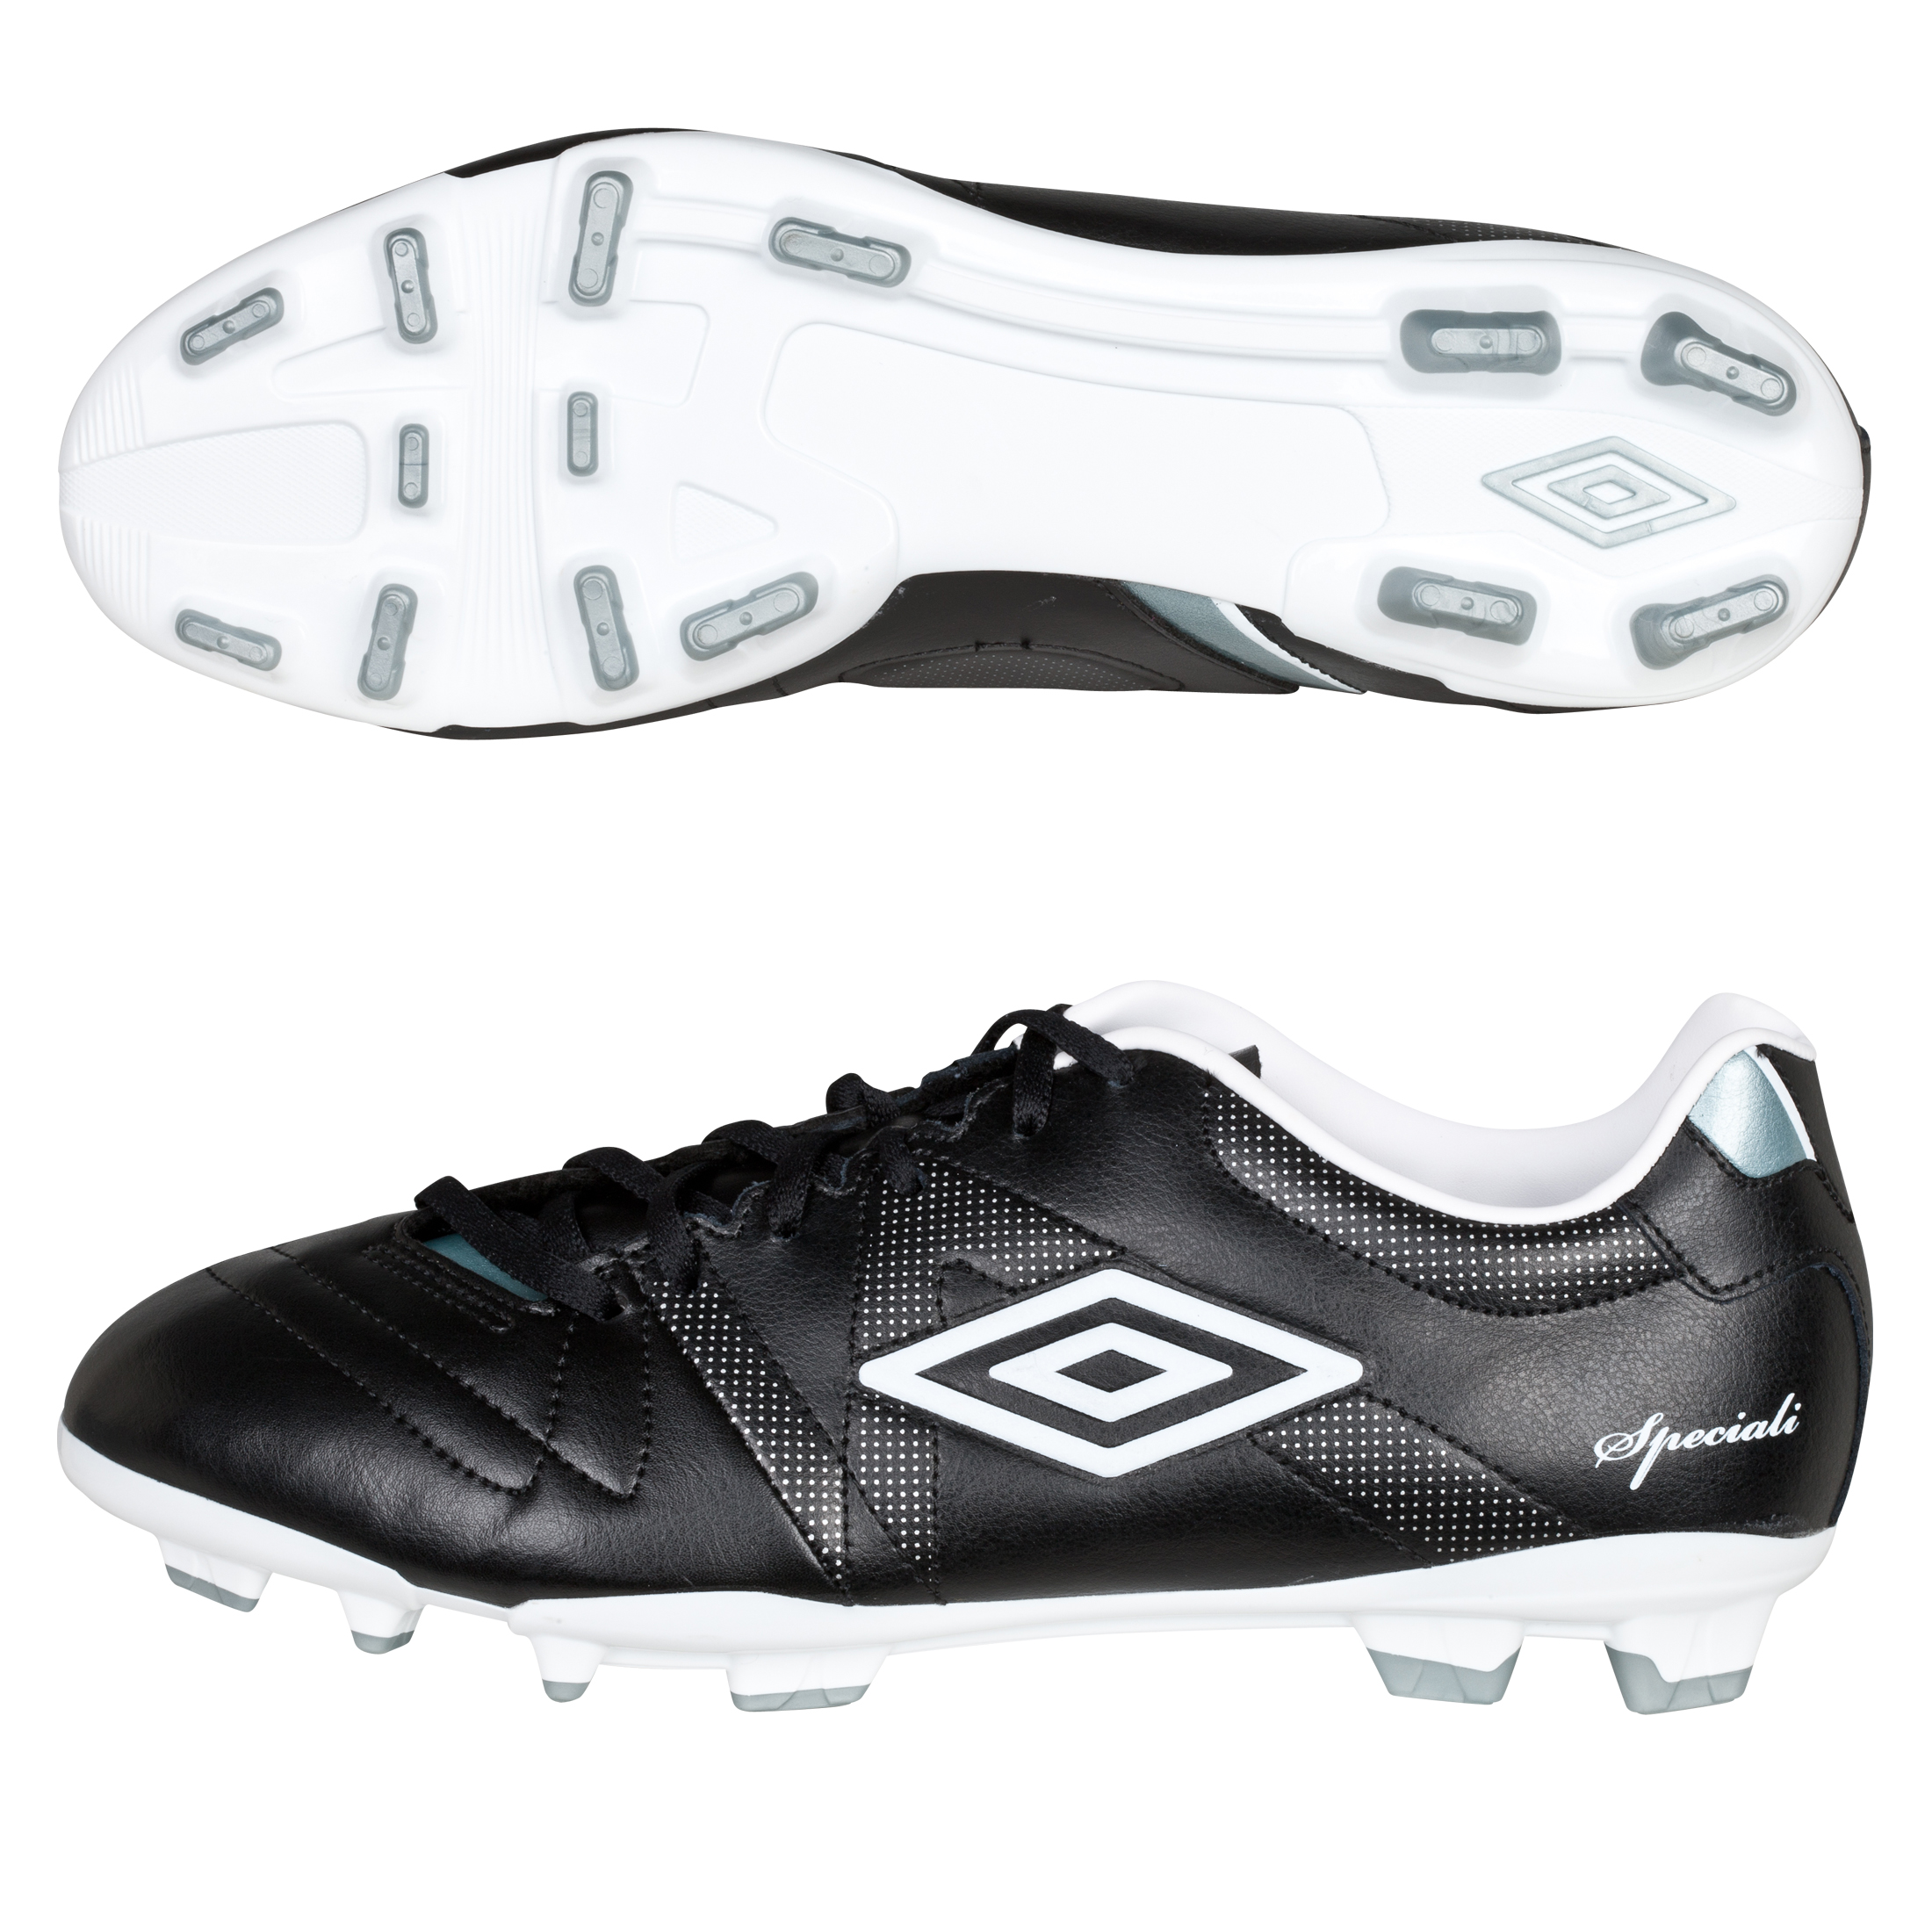 Speciali 3 Cup FG Black/White/Chrome